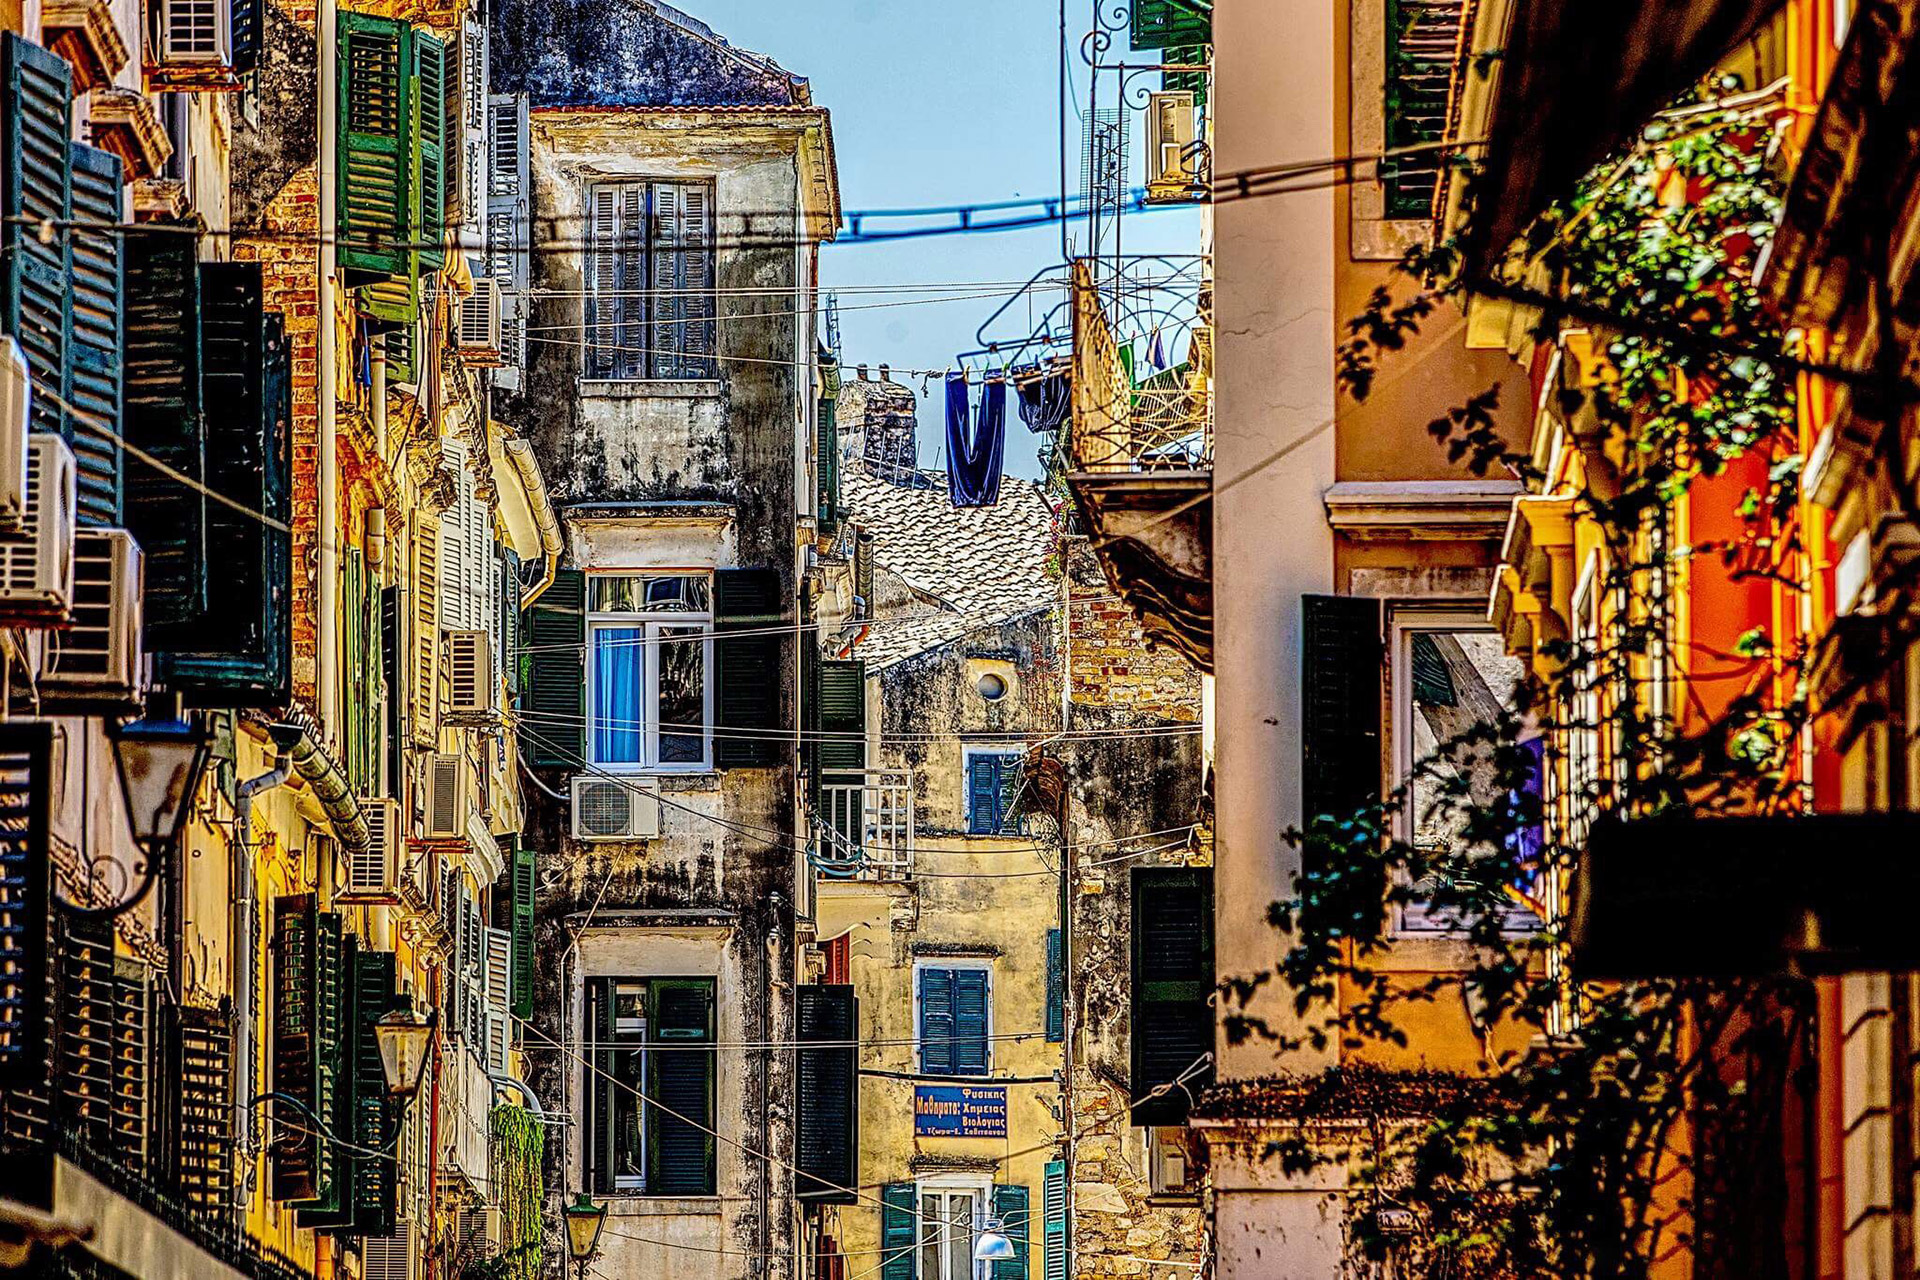 Corfu food & culture tour